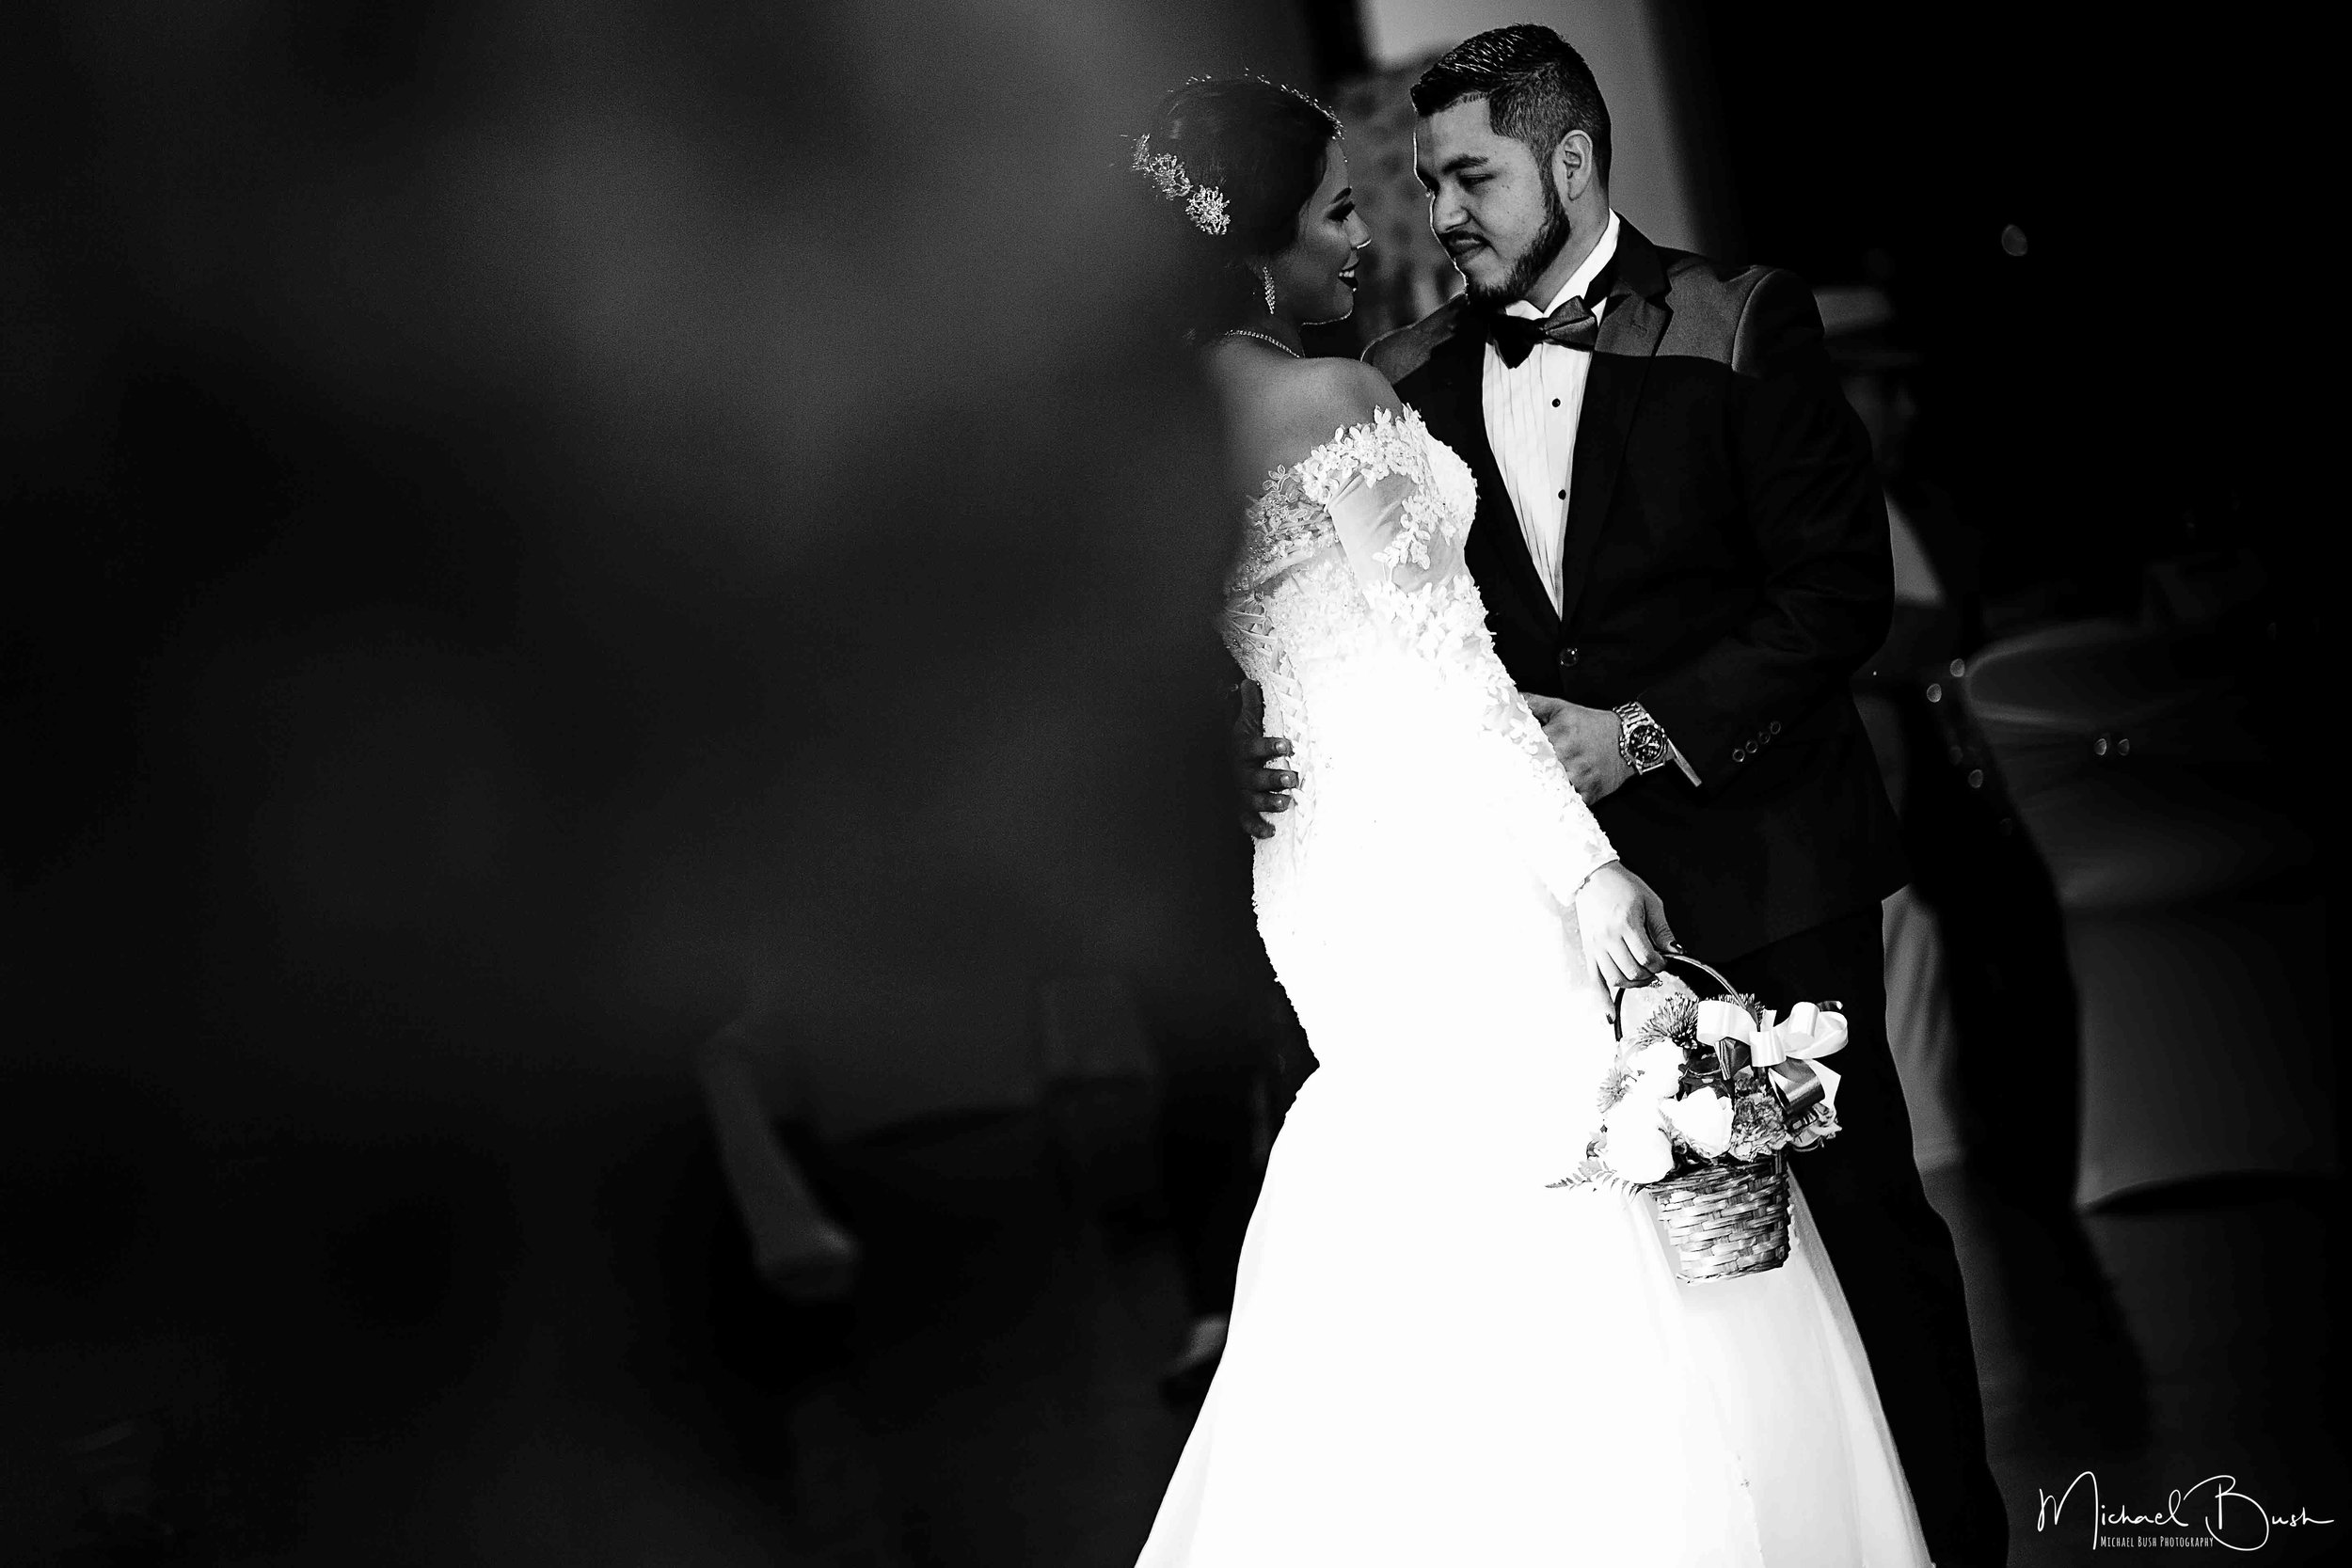 Wedding-Reception-Detials-Fort-Worth-Venue-love-first-dance-b&w.jpg